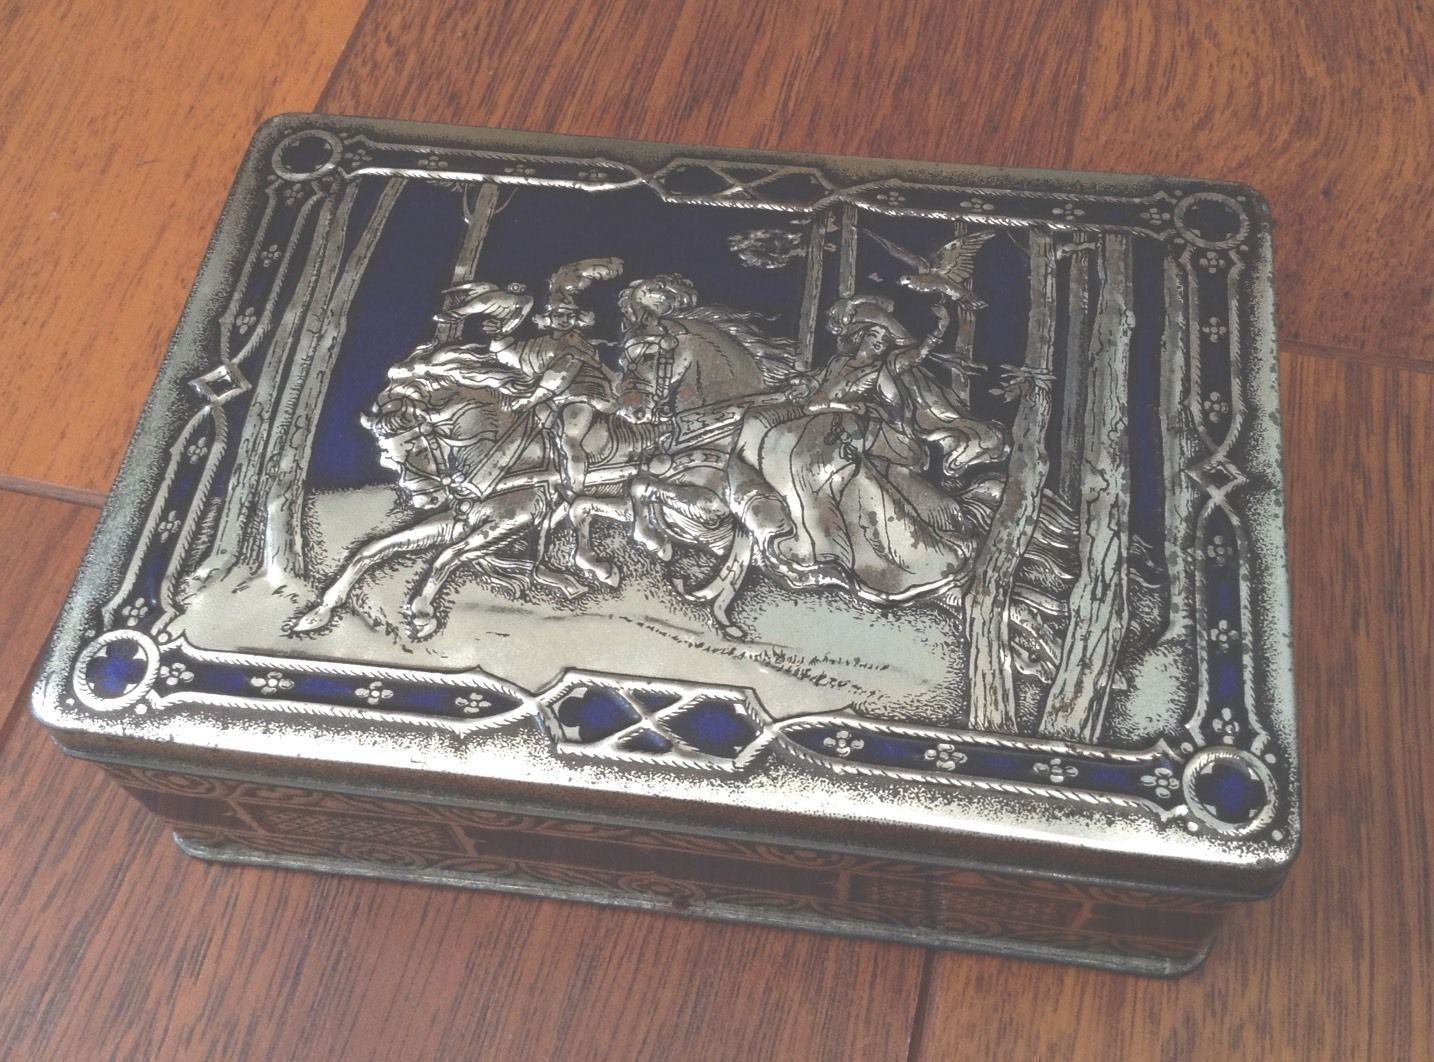 VINTAGE - RILEYS TOFFEE TIN - RARE / COLLECTORS This made a very good jewellery box